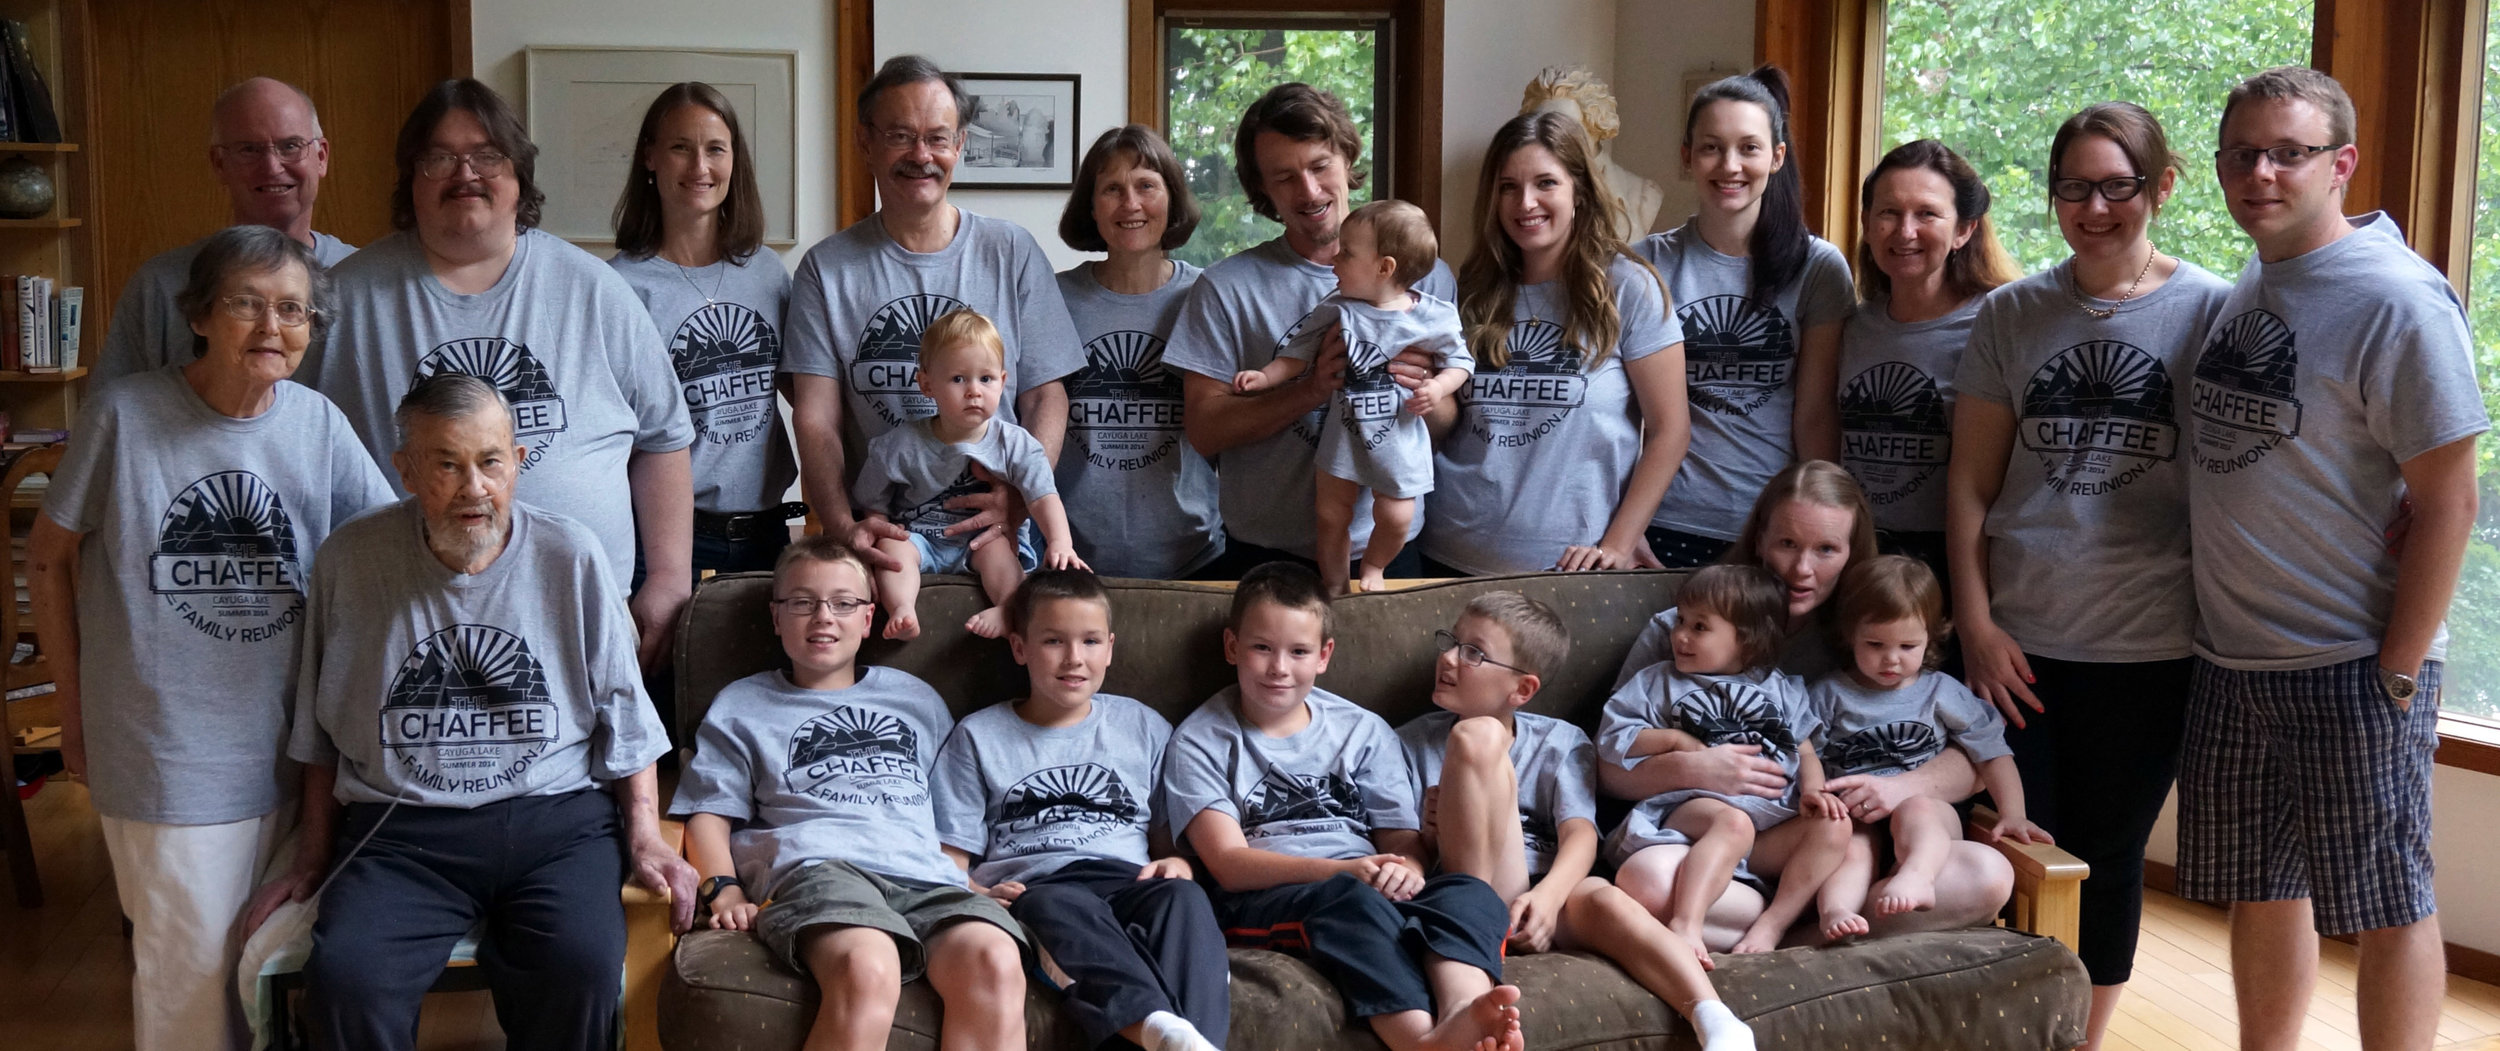 Reunion Tshirt_ Family Group.jpg